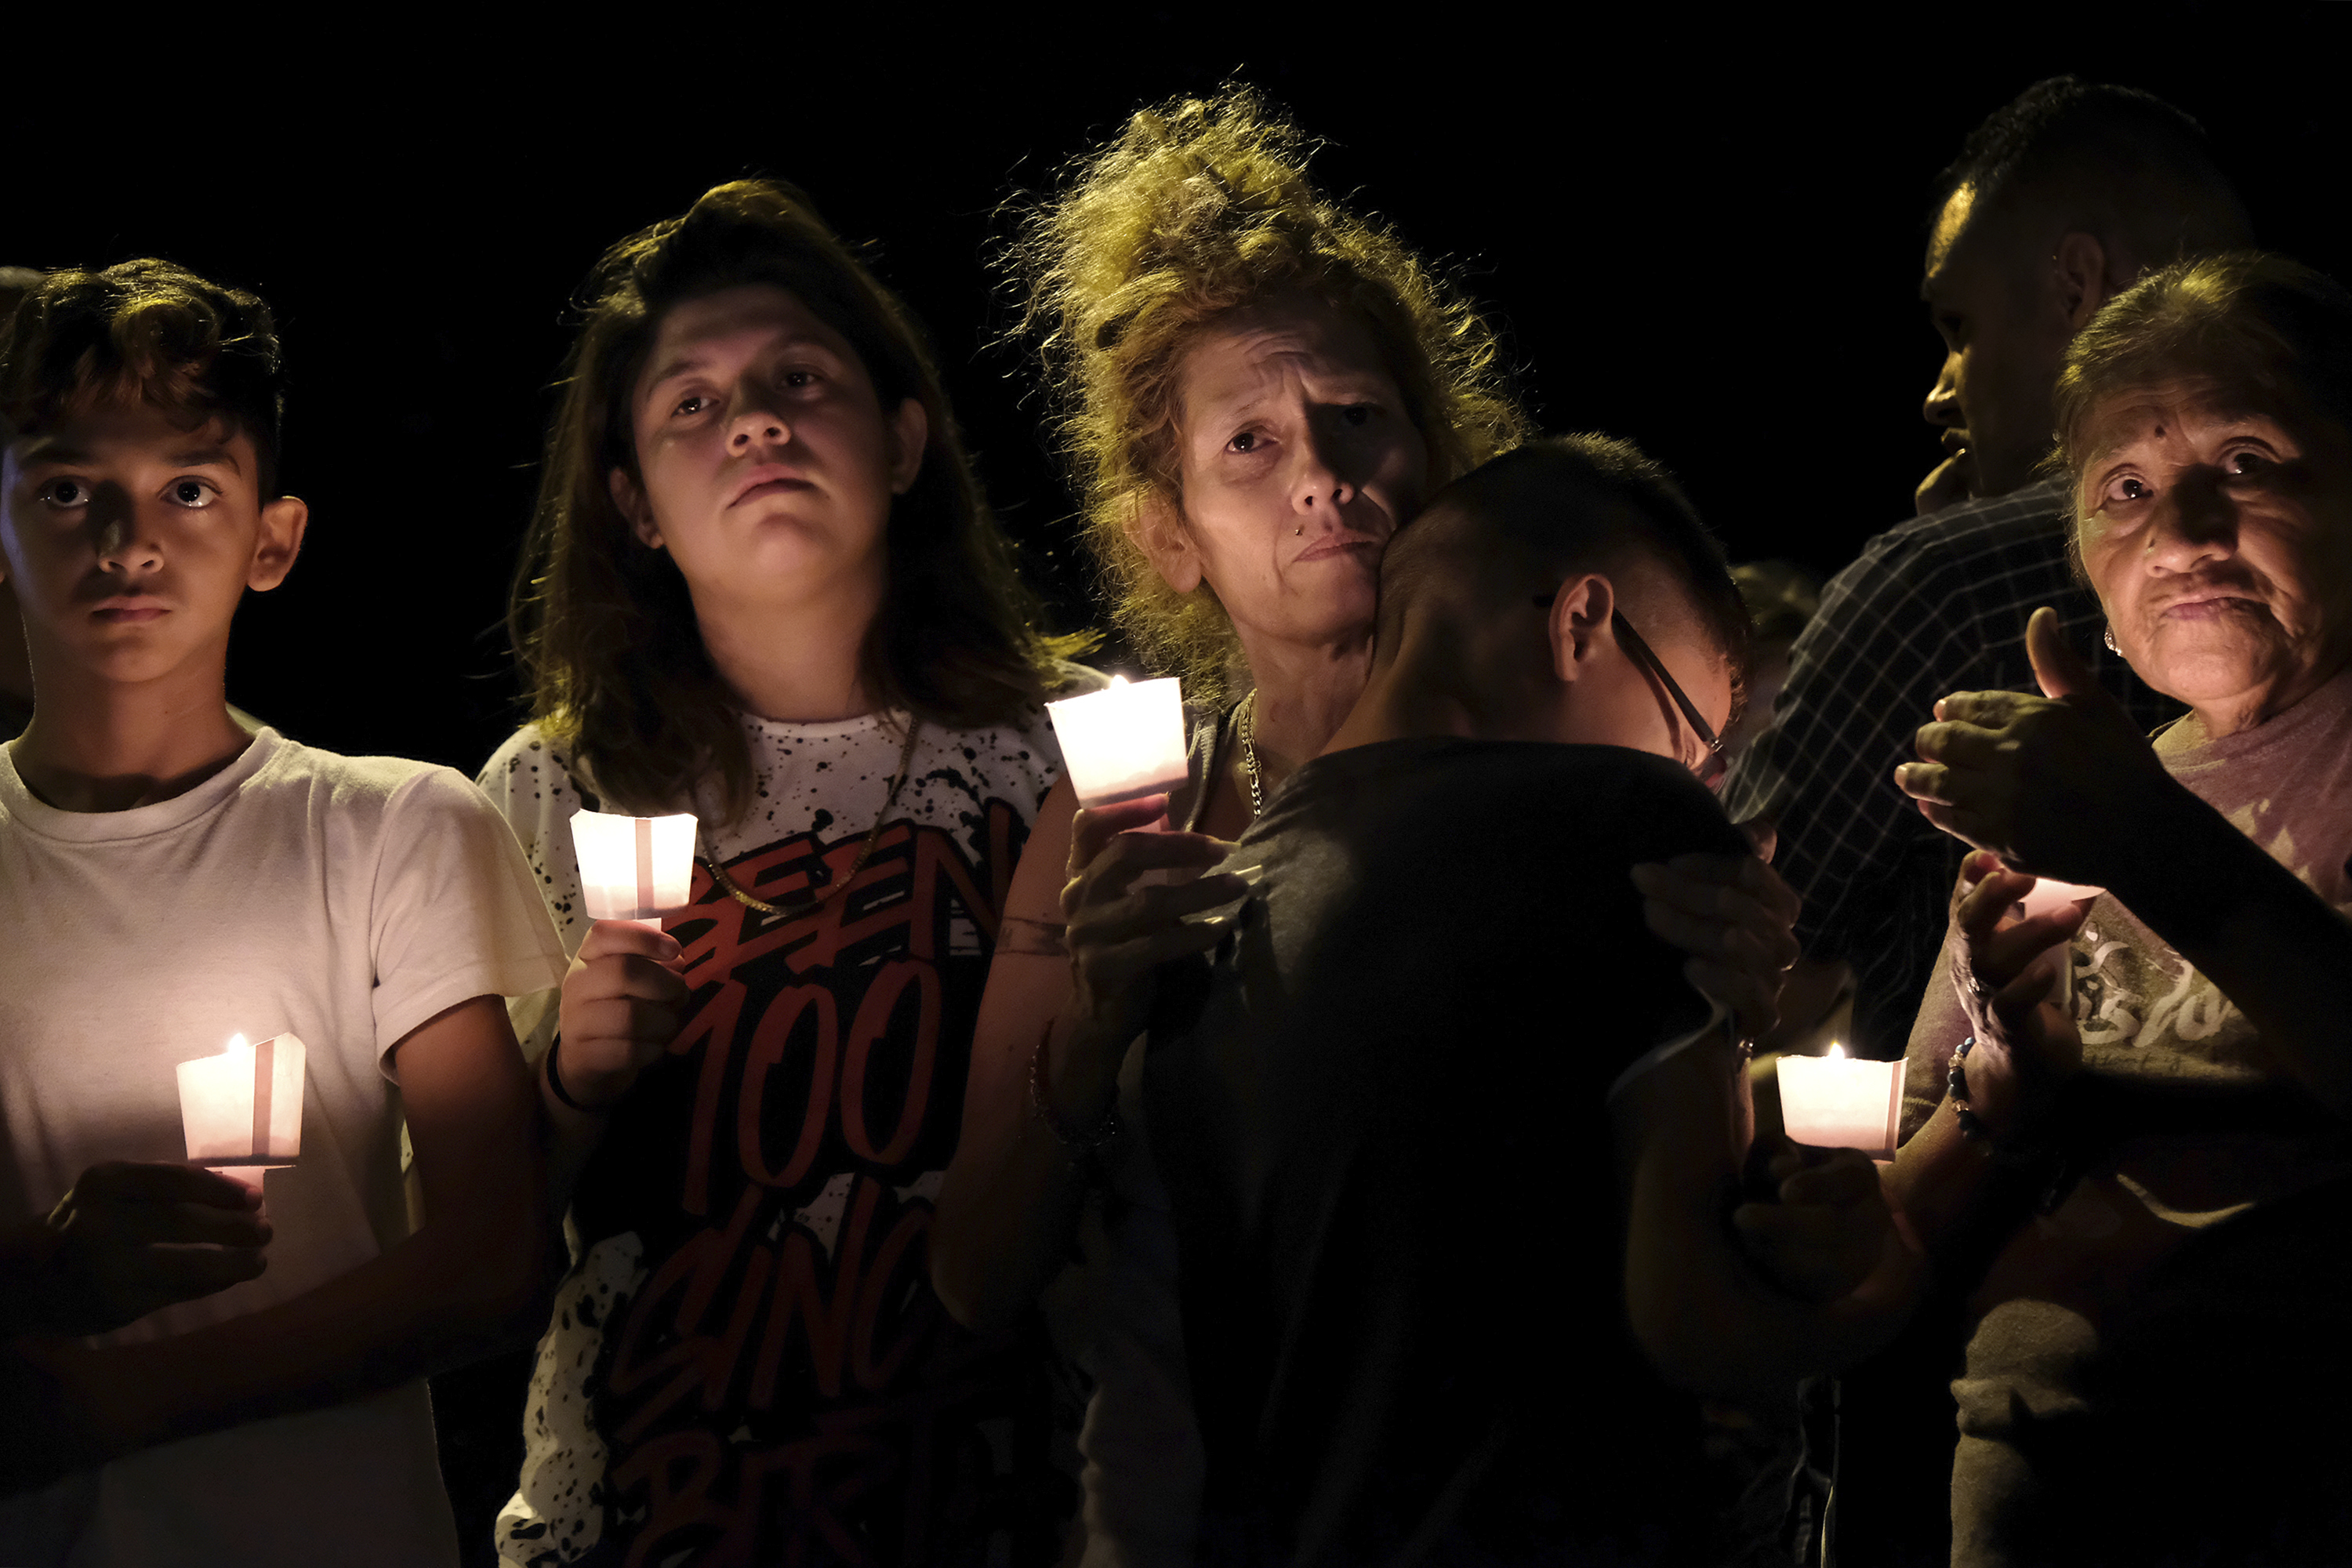 "<div class=""meta image-caption""><div class=""origin-logo origin-image none""><span>none</span></div><span class=""caption-text"">From left are Christopher Rodriguez, Esmeralda Rodriguez, Mona Rodriguez, Jayanthony Hernandez, 12, and Juanita Rodriguez participate in a candlelight vigil for the victims. (Laura Skelding/AP Photo)</span></div>"